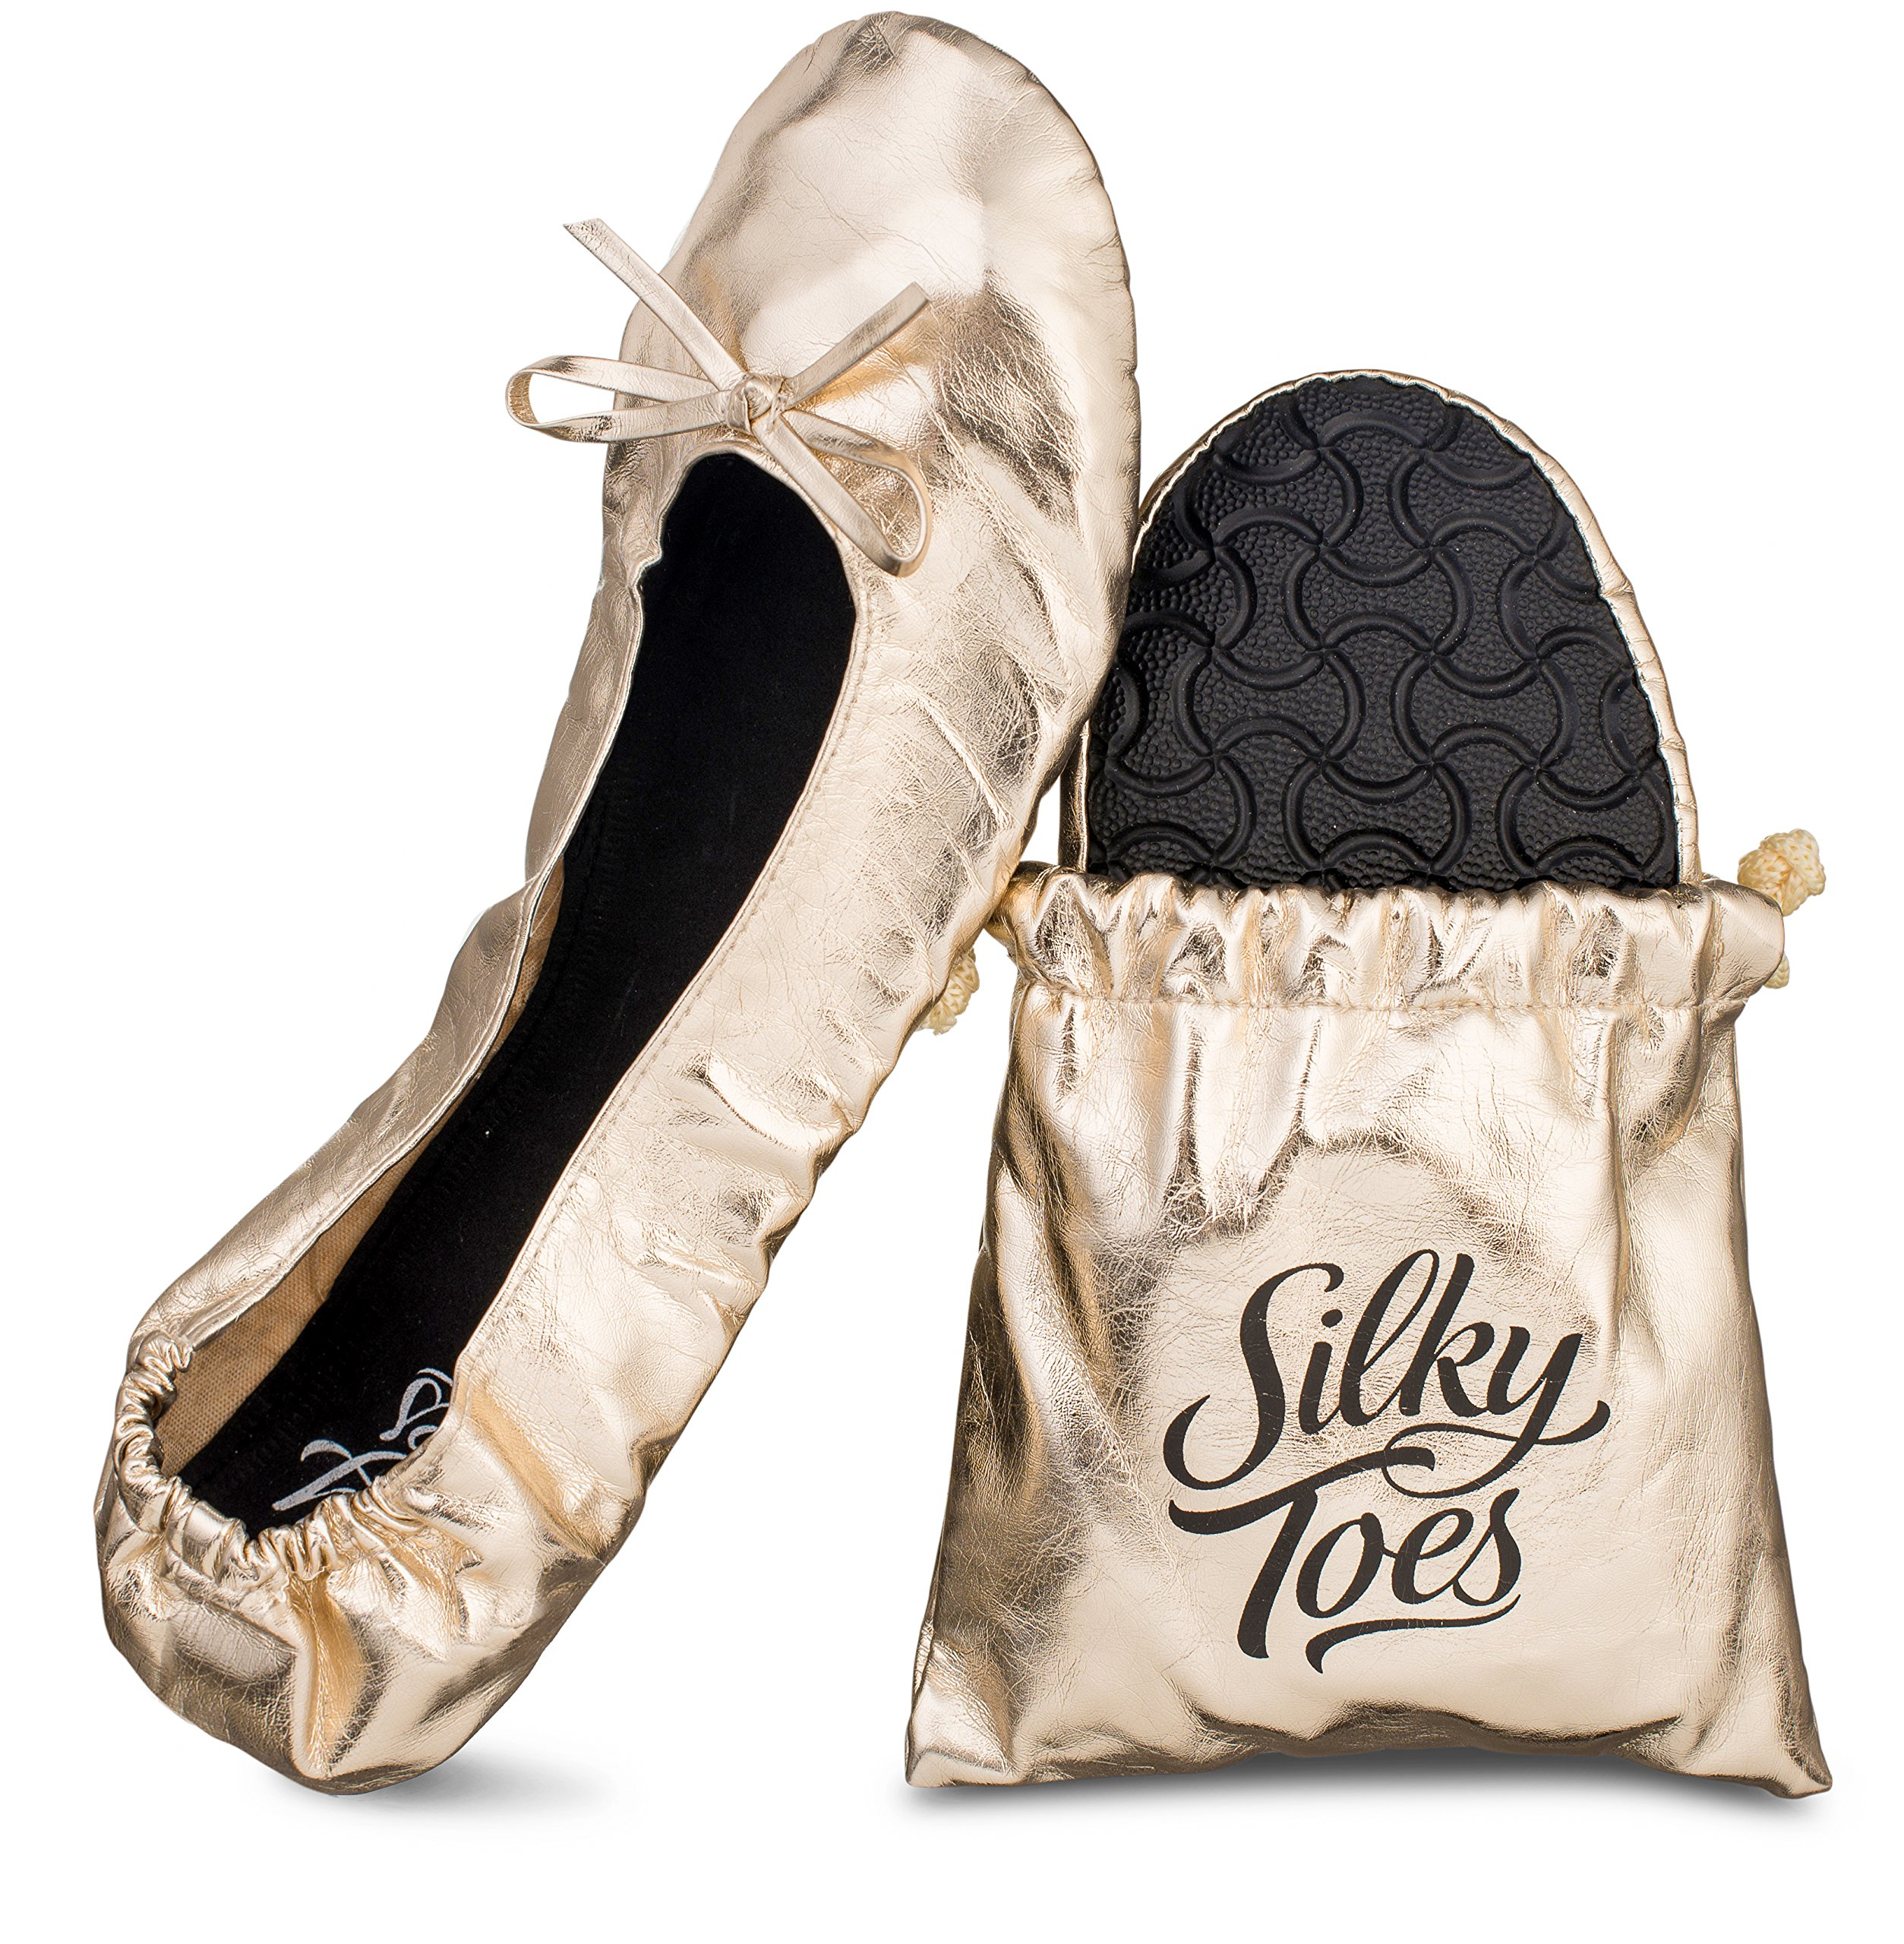 Silky Toes Women's Foldable Portable Travel Ballet Flat Roll Up Slipper Shoes with Matching Carrying Pouch (Small, Gold)